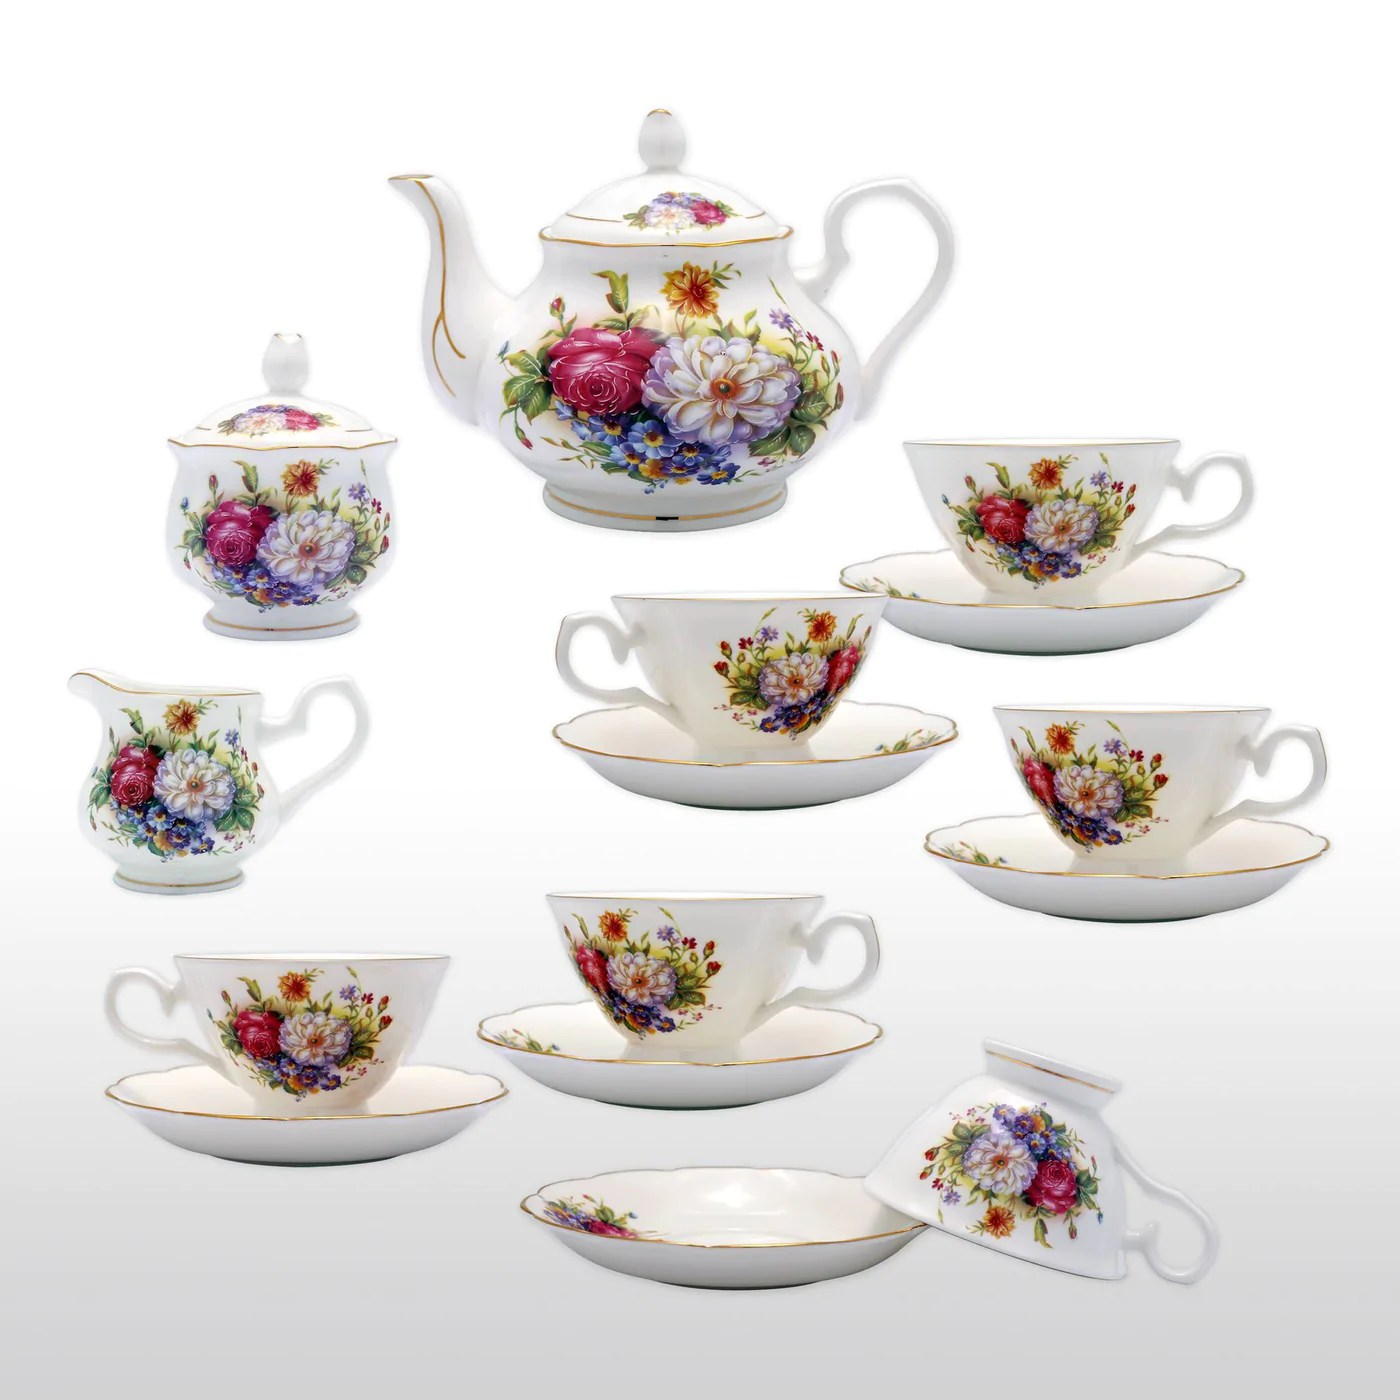 Teapot With Cup Fine Bone China 15 Piece Coffee Tea Set Colorful Floral Painting With Teapot Cups Saucers Sugar Bowl And Creamer